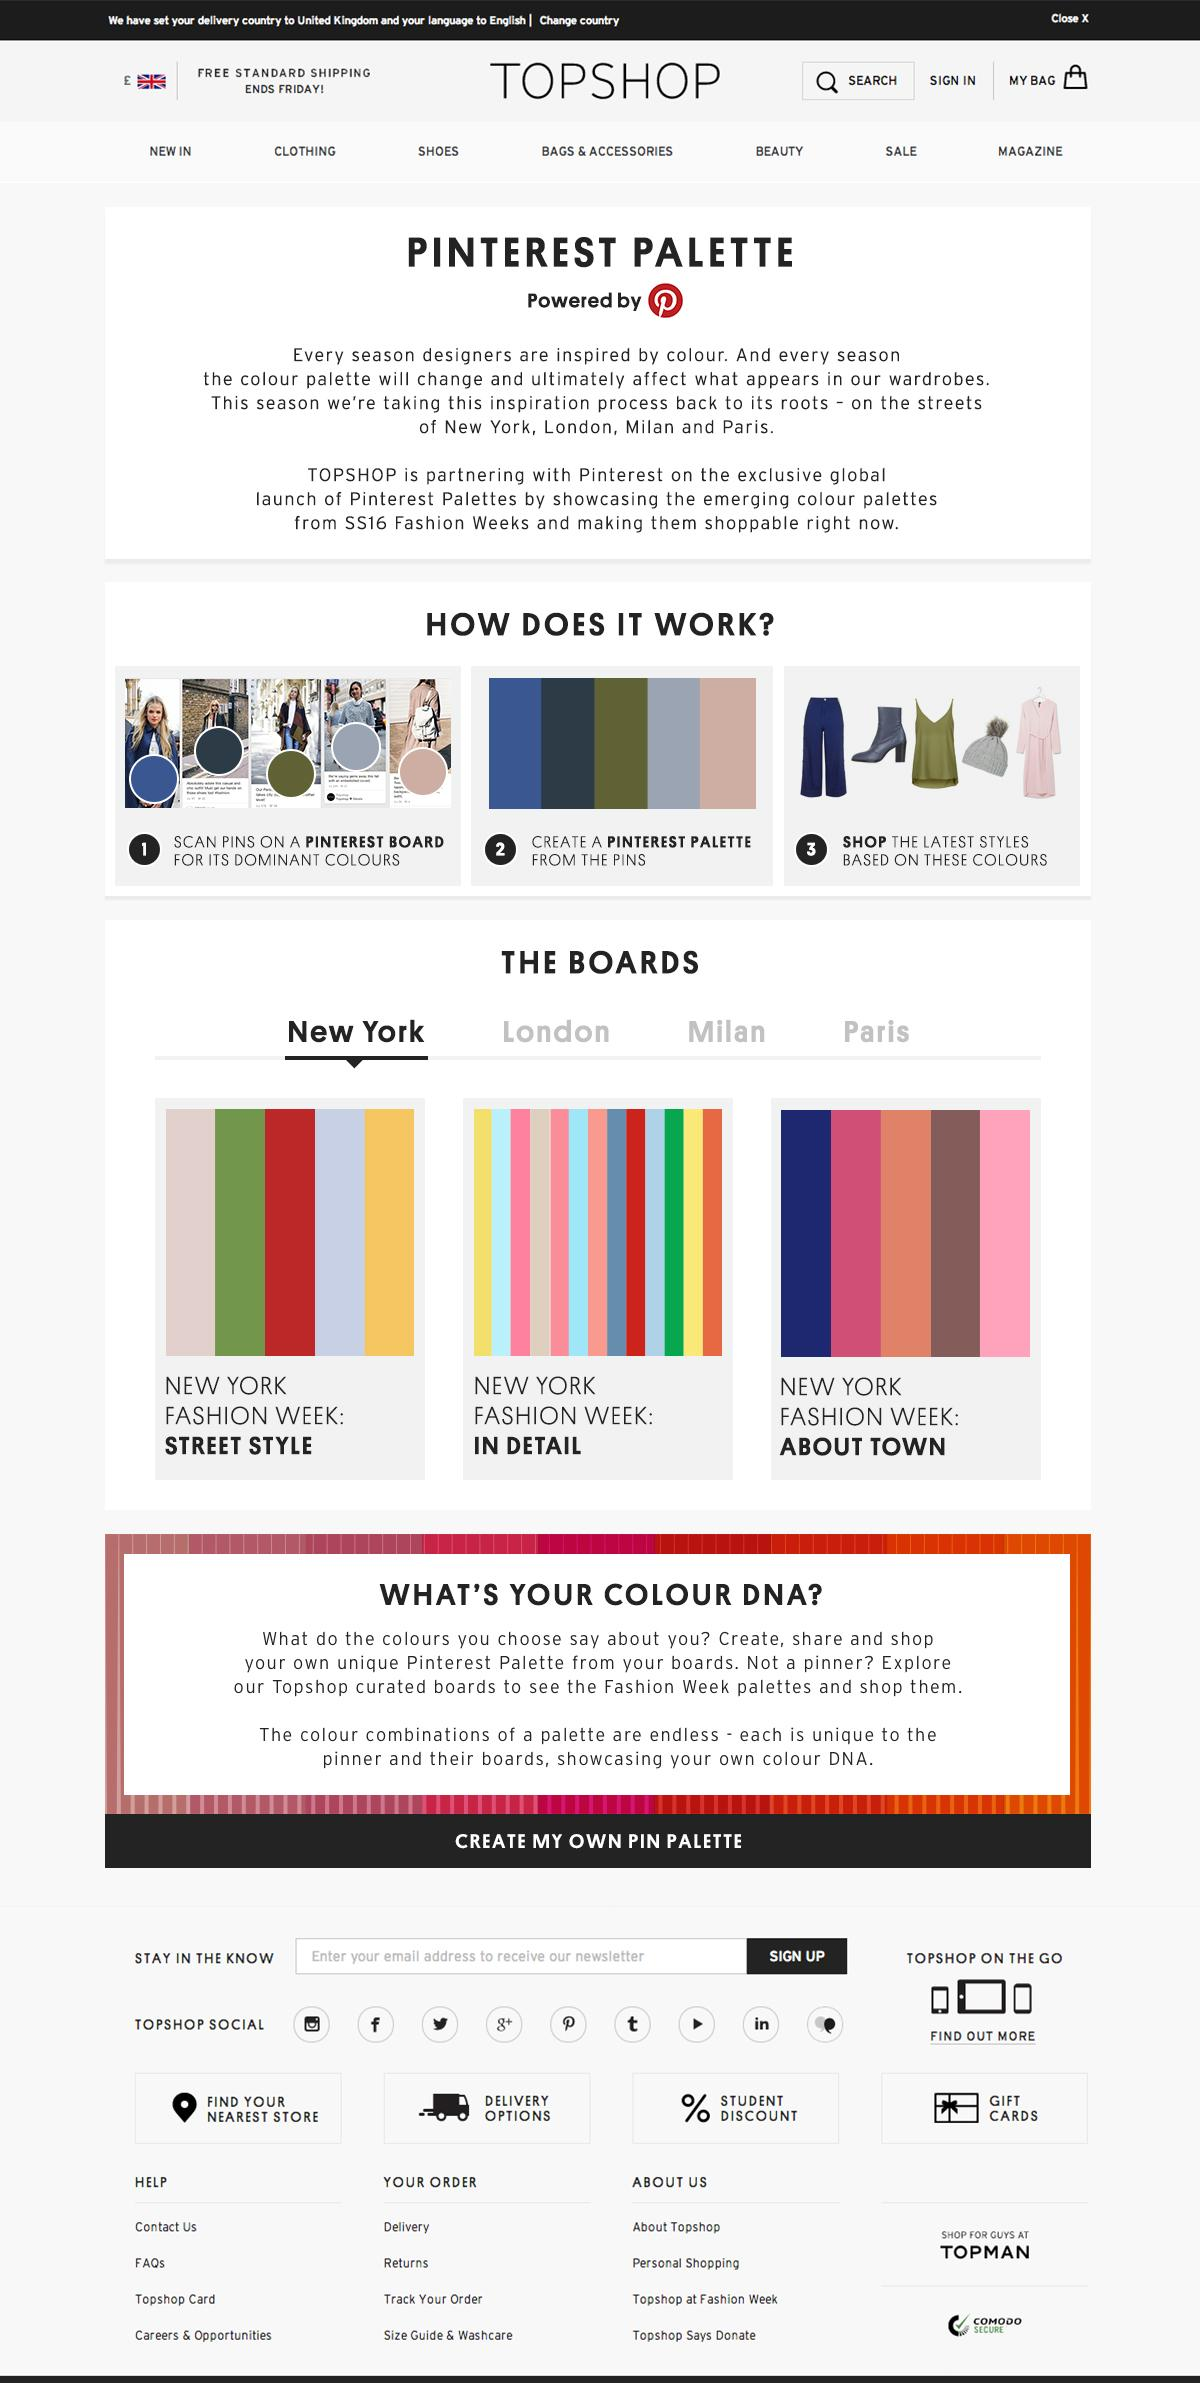 Thumbnail for Topshop in Partnership with Pinterest Palettes